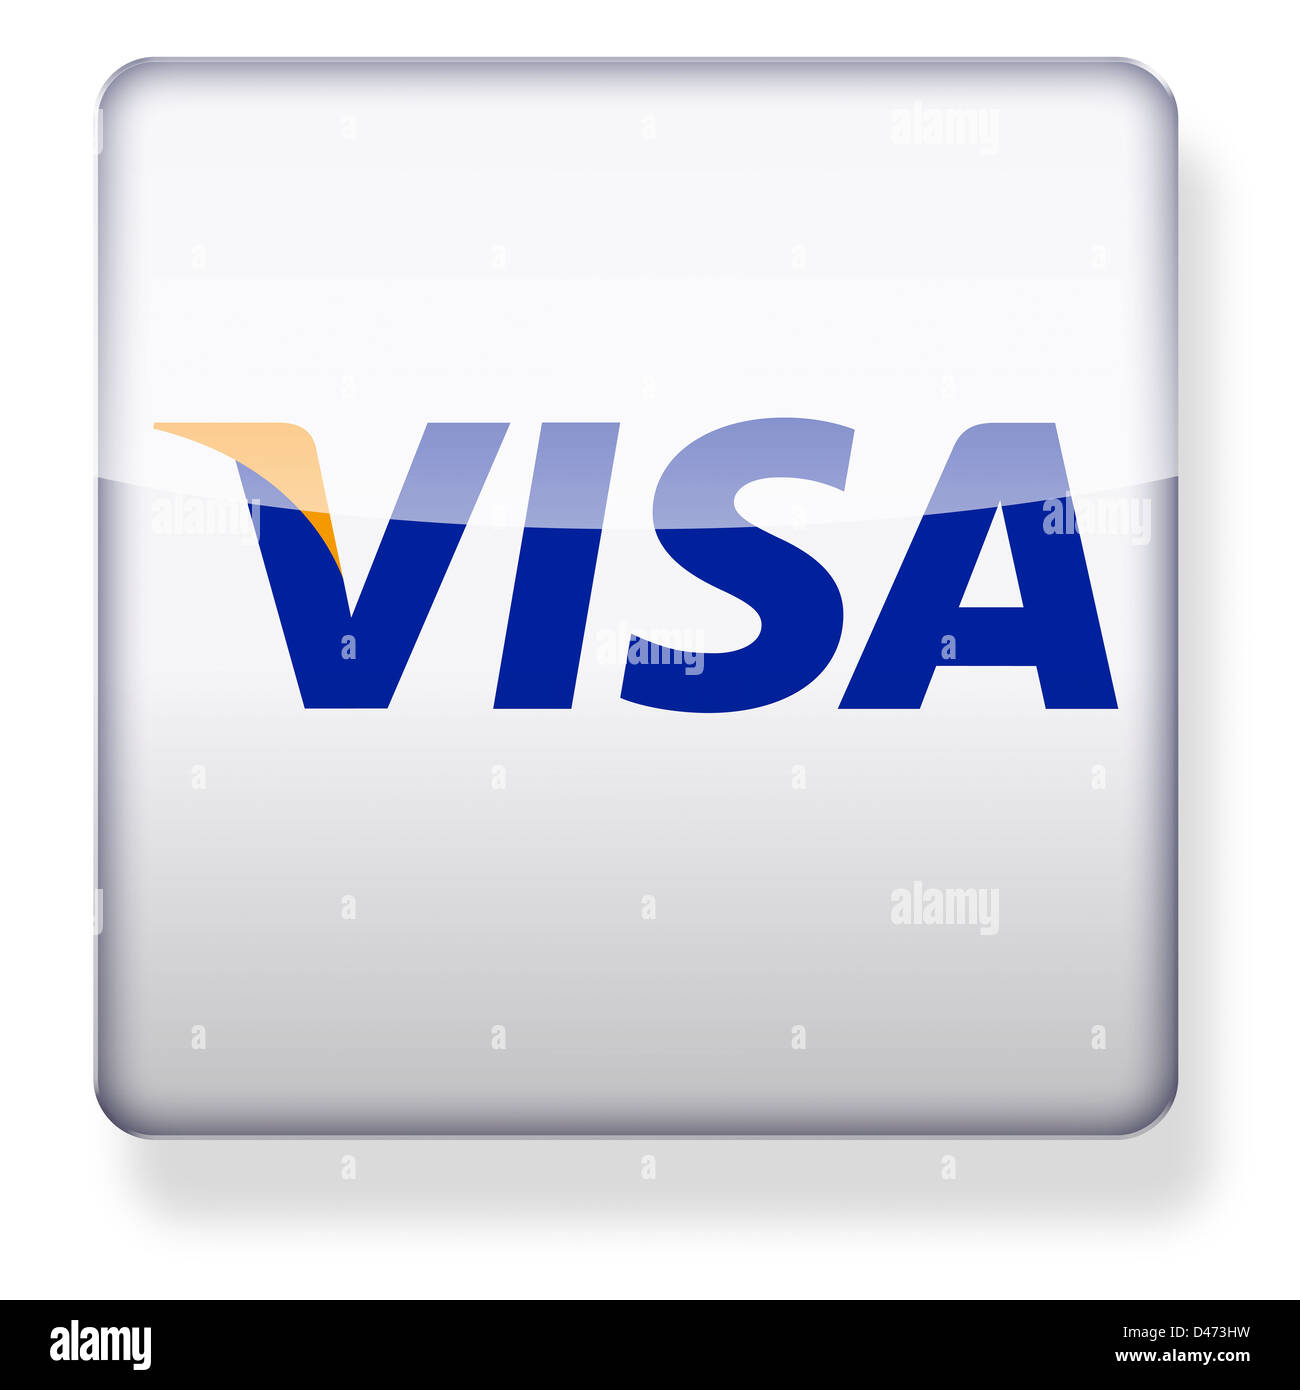 Visa logo as an app icon. Clipping path included. - Stock Image